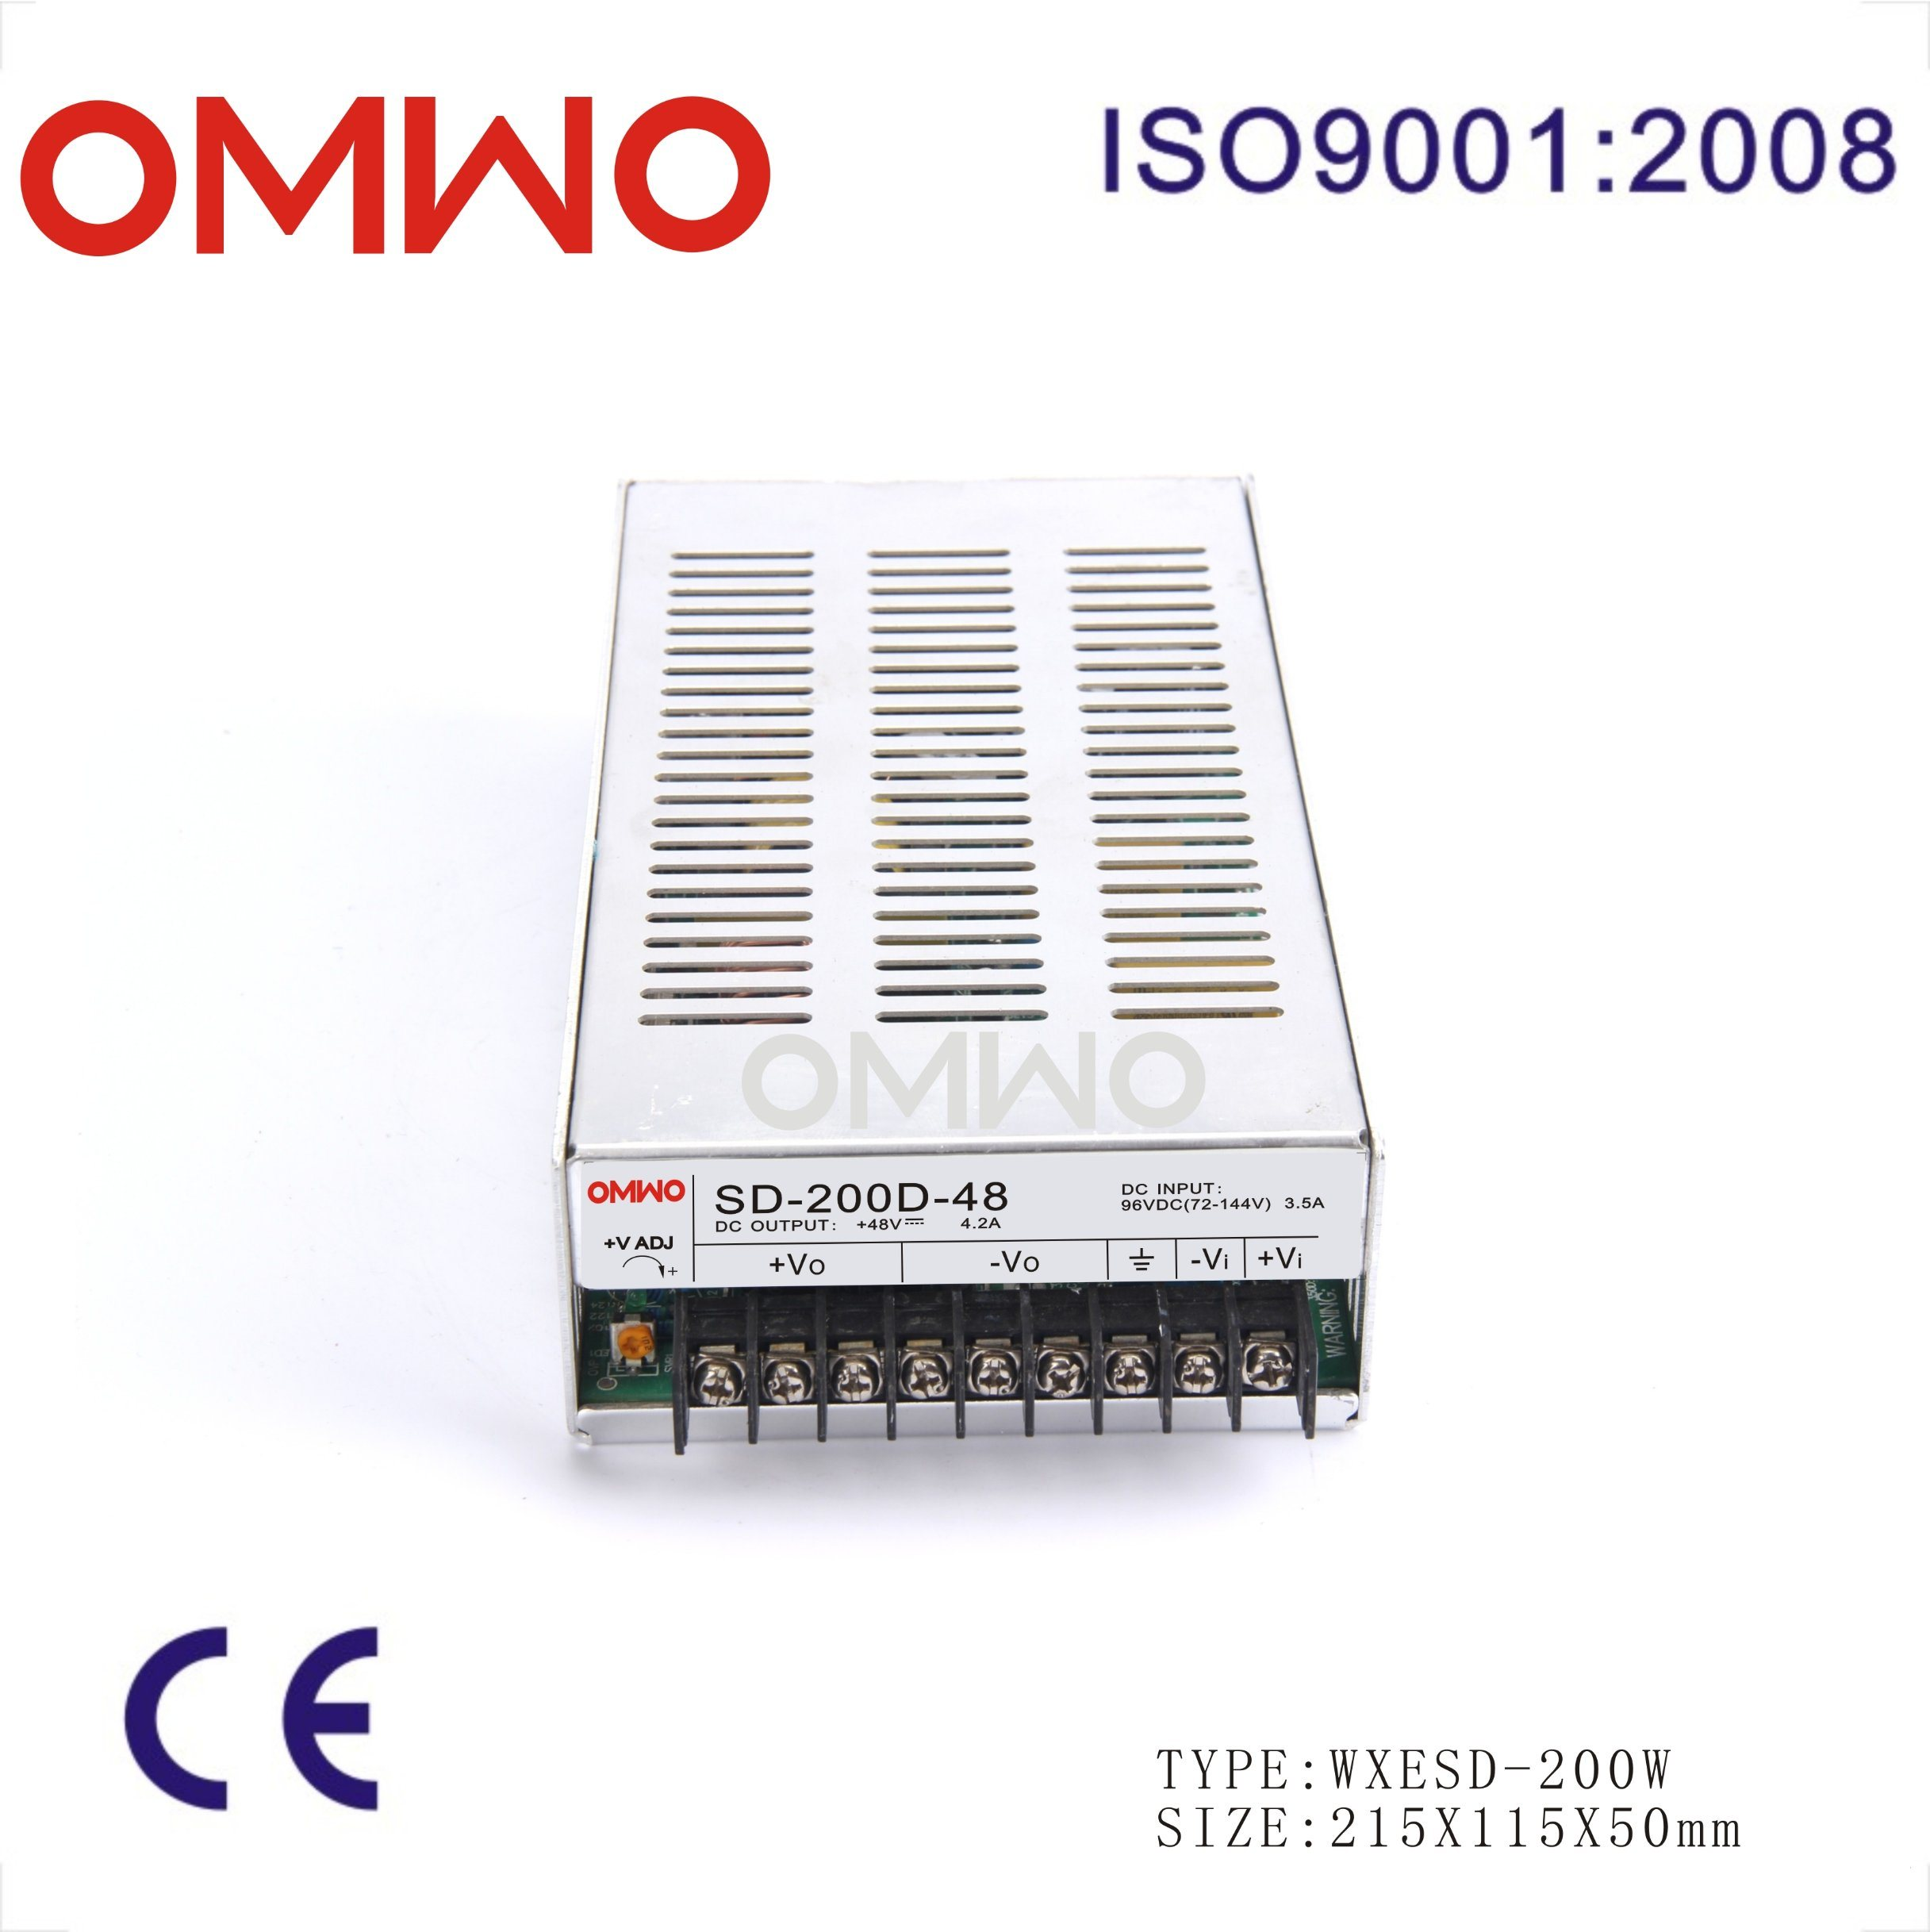 200W Wxsd-200d-12 Single Output DC to DC Converter